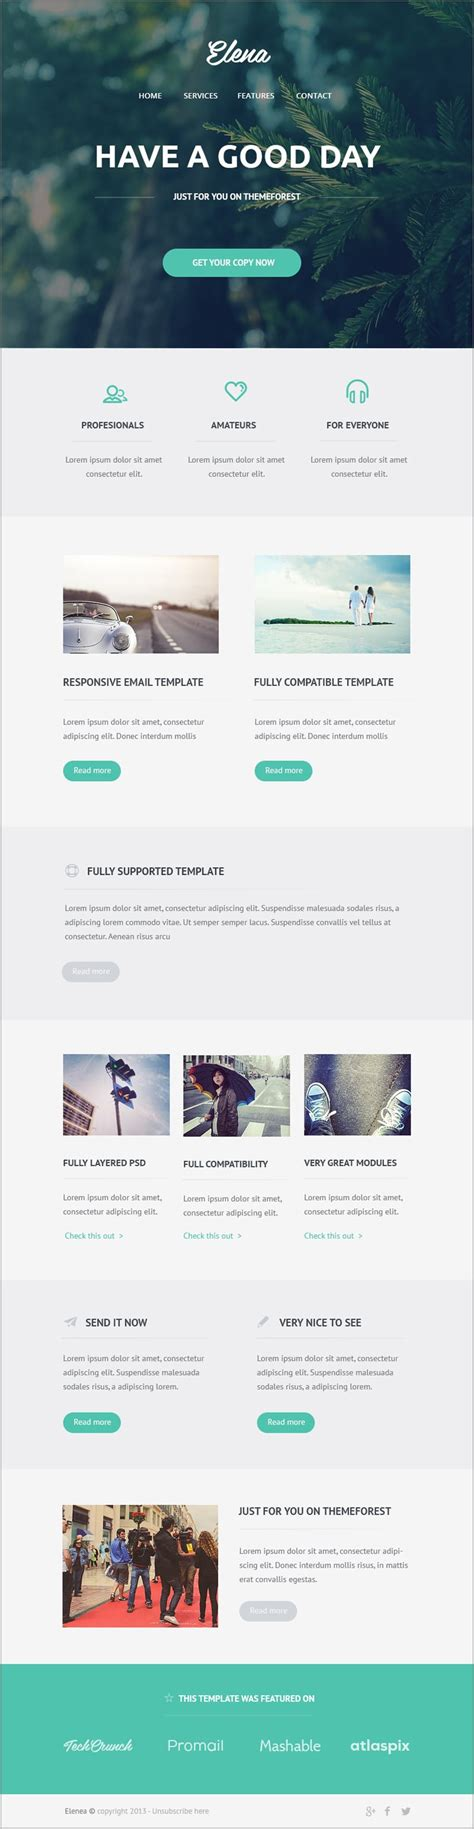 Free Email Newsletter Templates Psd 187 Css Author Free Email Templates